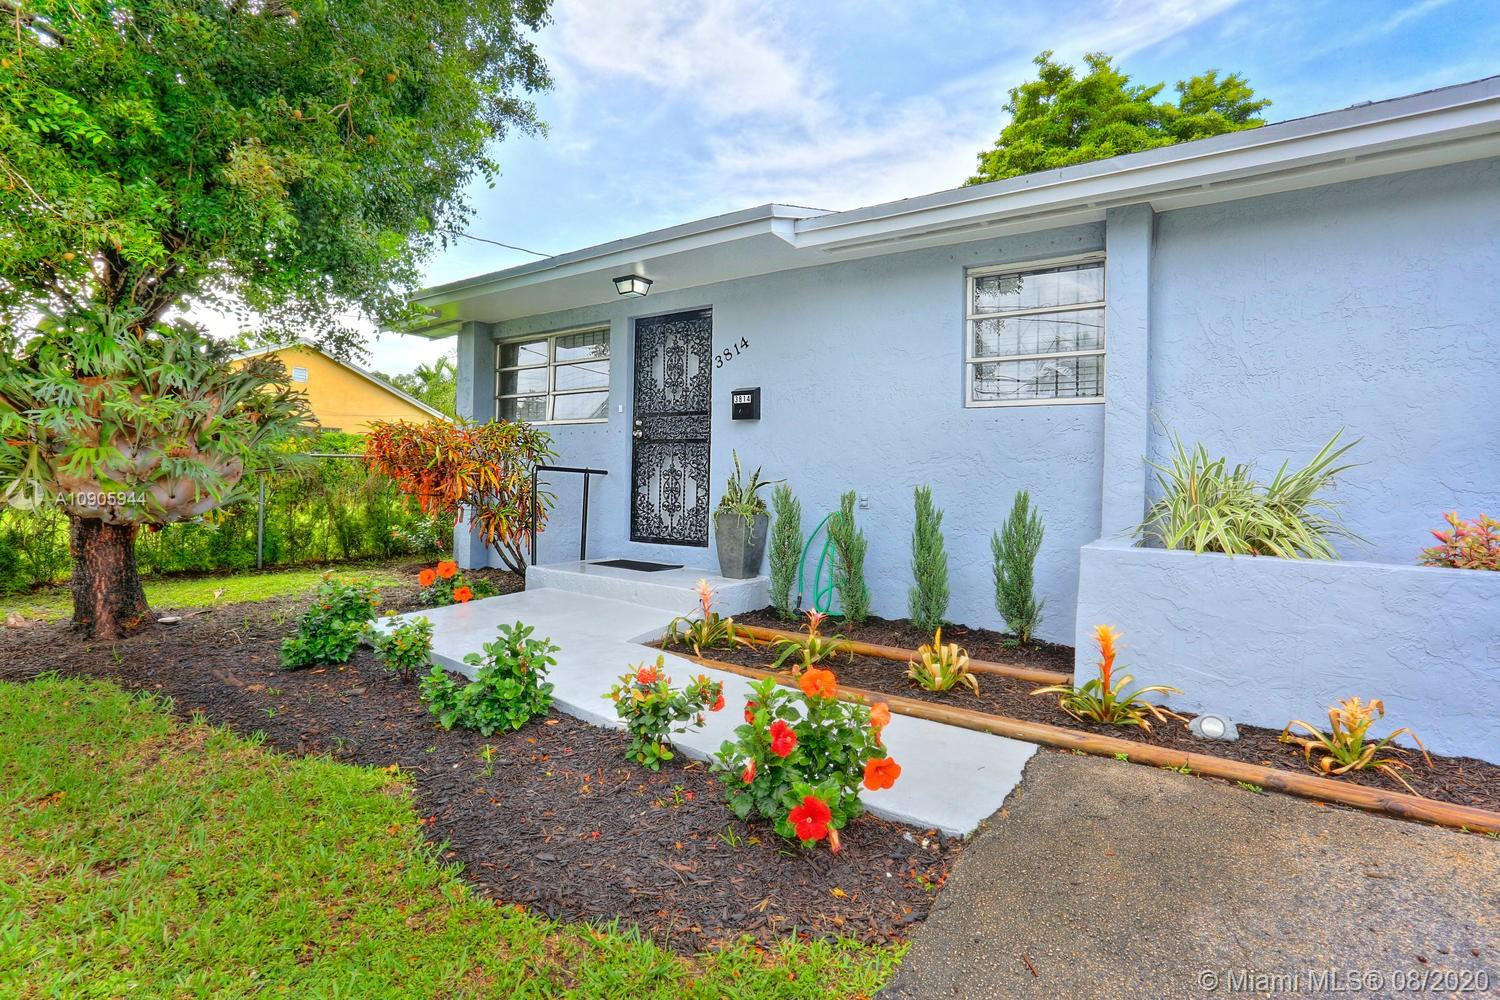 Lovely, move-in ready 3BR/2BA home in Coconut Grove, walking distance to the village center's galleries, boutiques, cafes and bayfront parks & marinas. Located in one of Miami's oldest neighborhoods, originally settled by Bahamian natives in the 1880's and now a vibrant community with new construction homes, townhomes and renovated original homes. Updates include new kitchen featuring white cabinetry, stainless appliances & breakfast bar. Not in a flood zone. Minutes to downtown, MIA, Coral Gables, Key Biscayne & the Beaches. Opportunity Zone Designation.